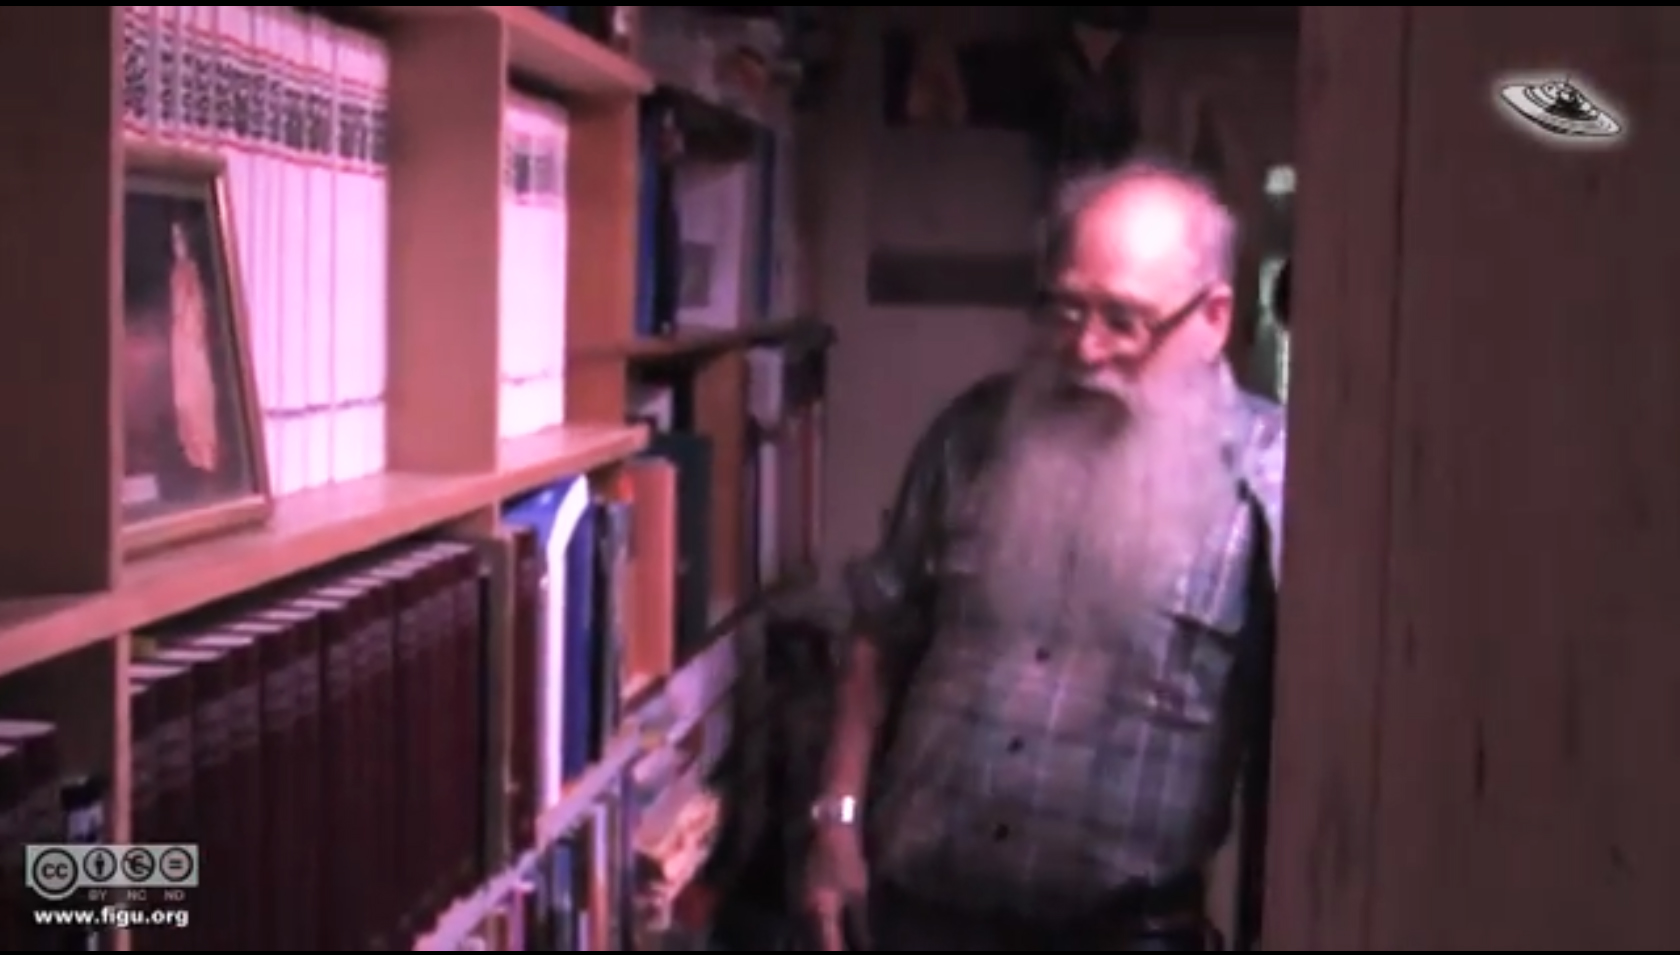 Interview with Billy Meier, Nr.004, @18:28 min